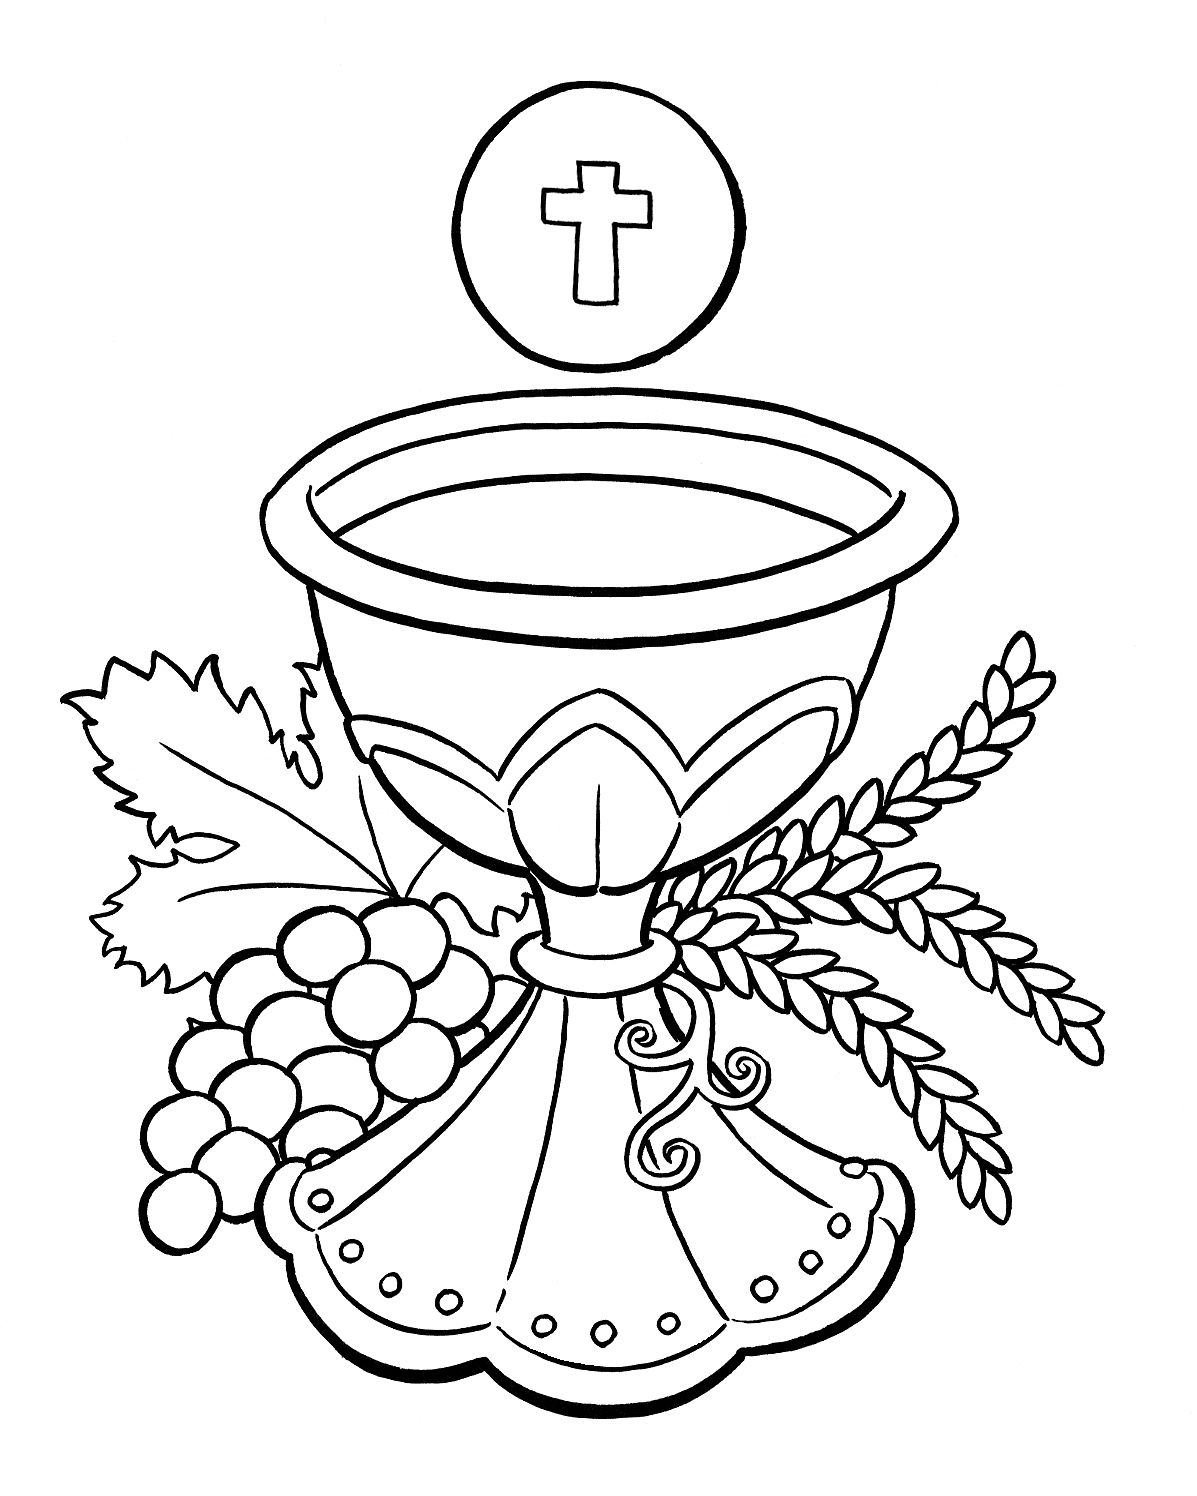 eucharist coloring pages for children - photo#4